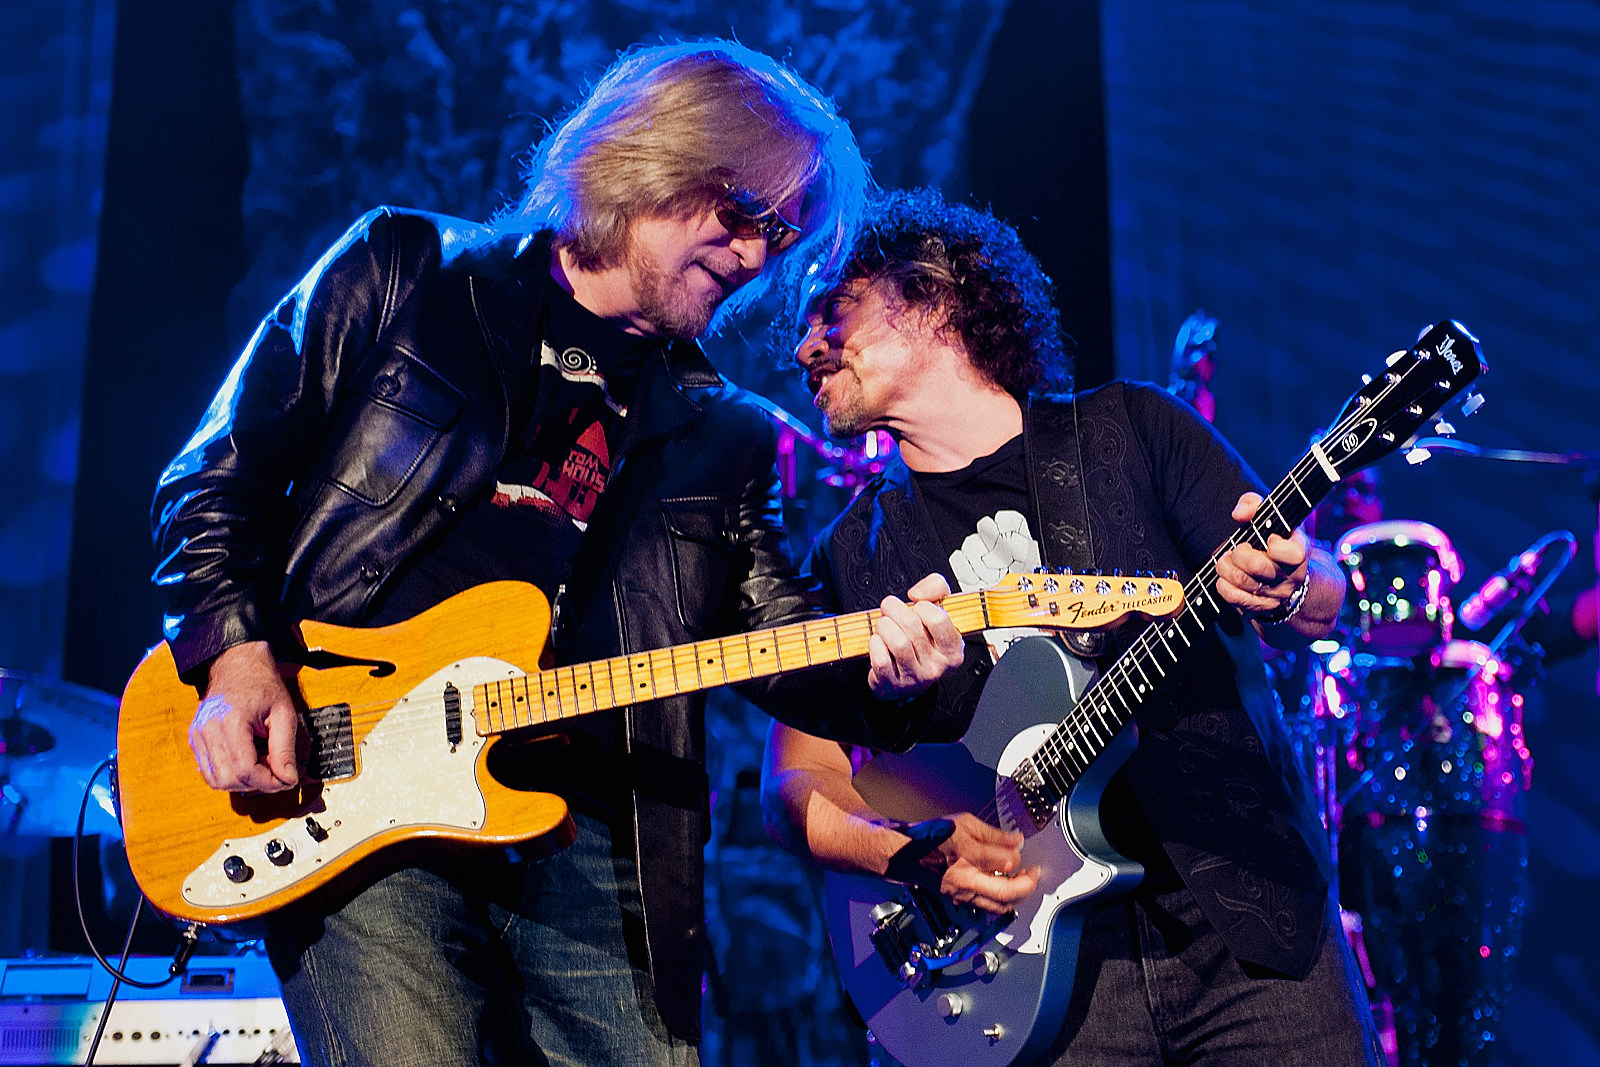 Hall and Oates 'Not Sure' About Next LP: 'Things Have Changed'